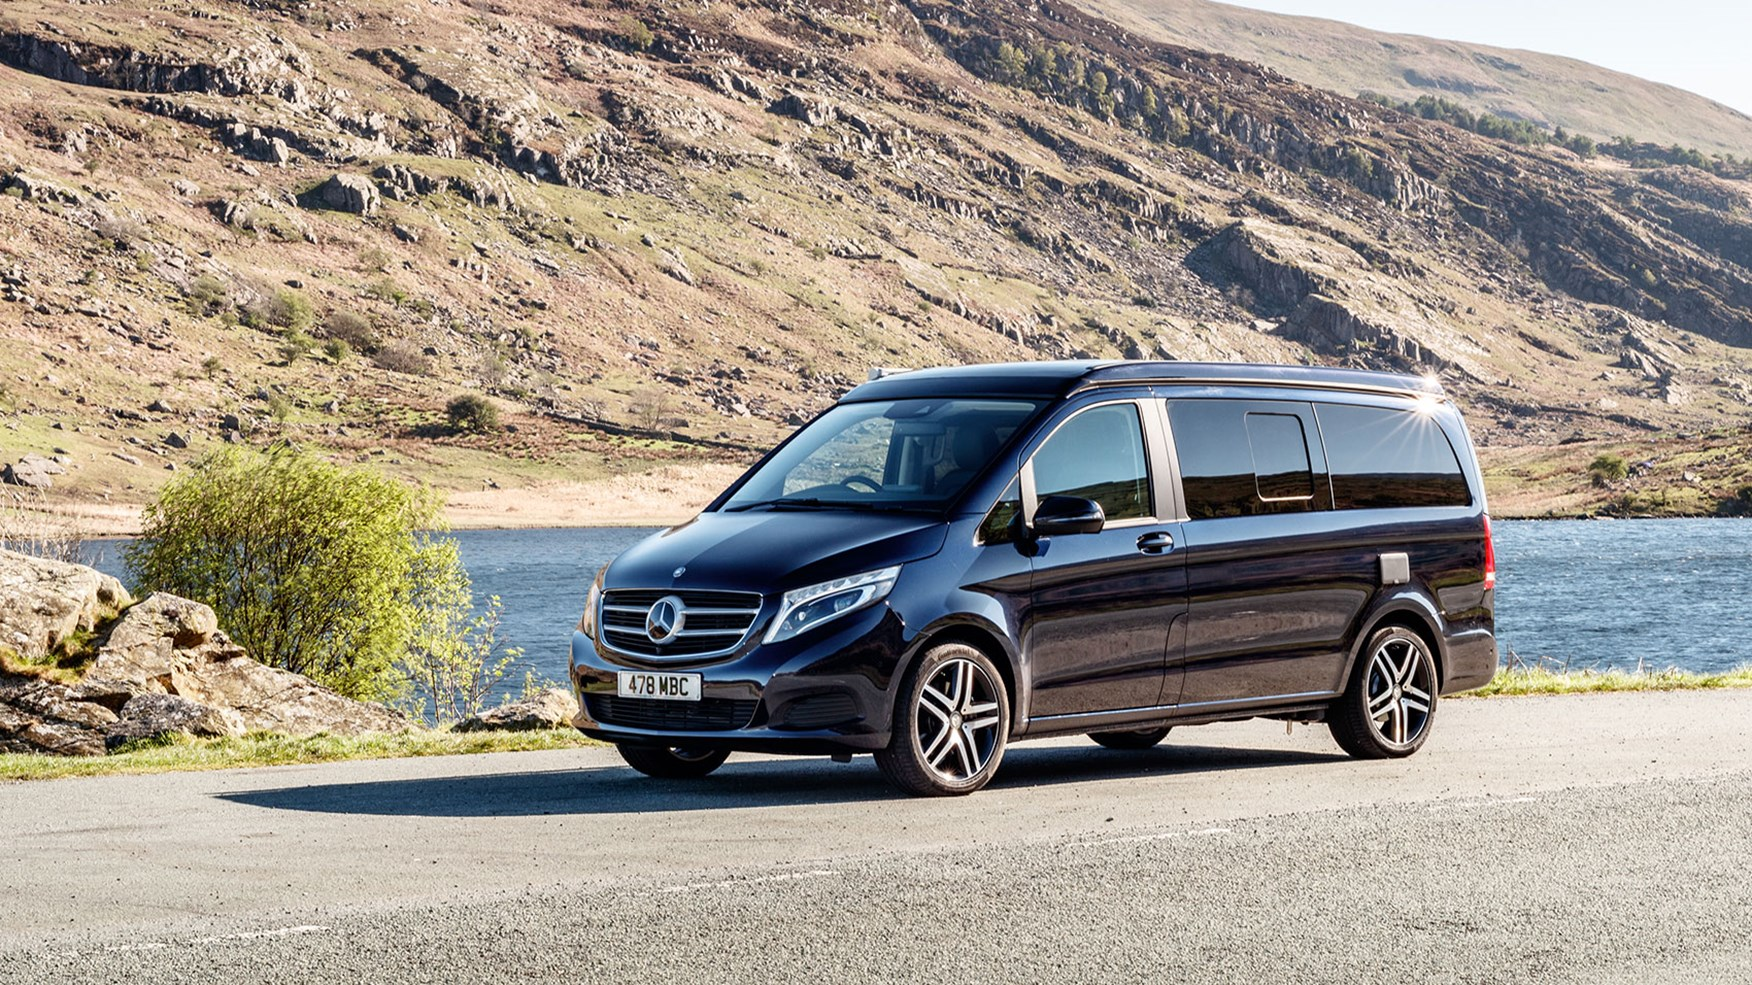 Mercedes Benz Lease >> Mercedes-Benz V-class Marco Polo (2017) review by CAR Magazine